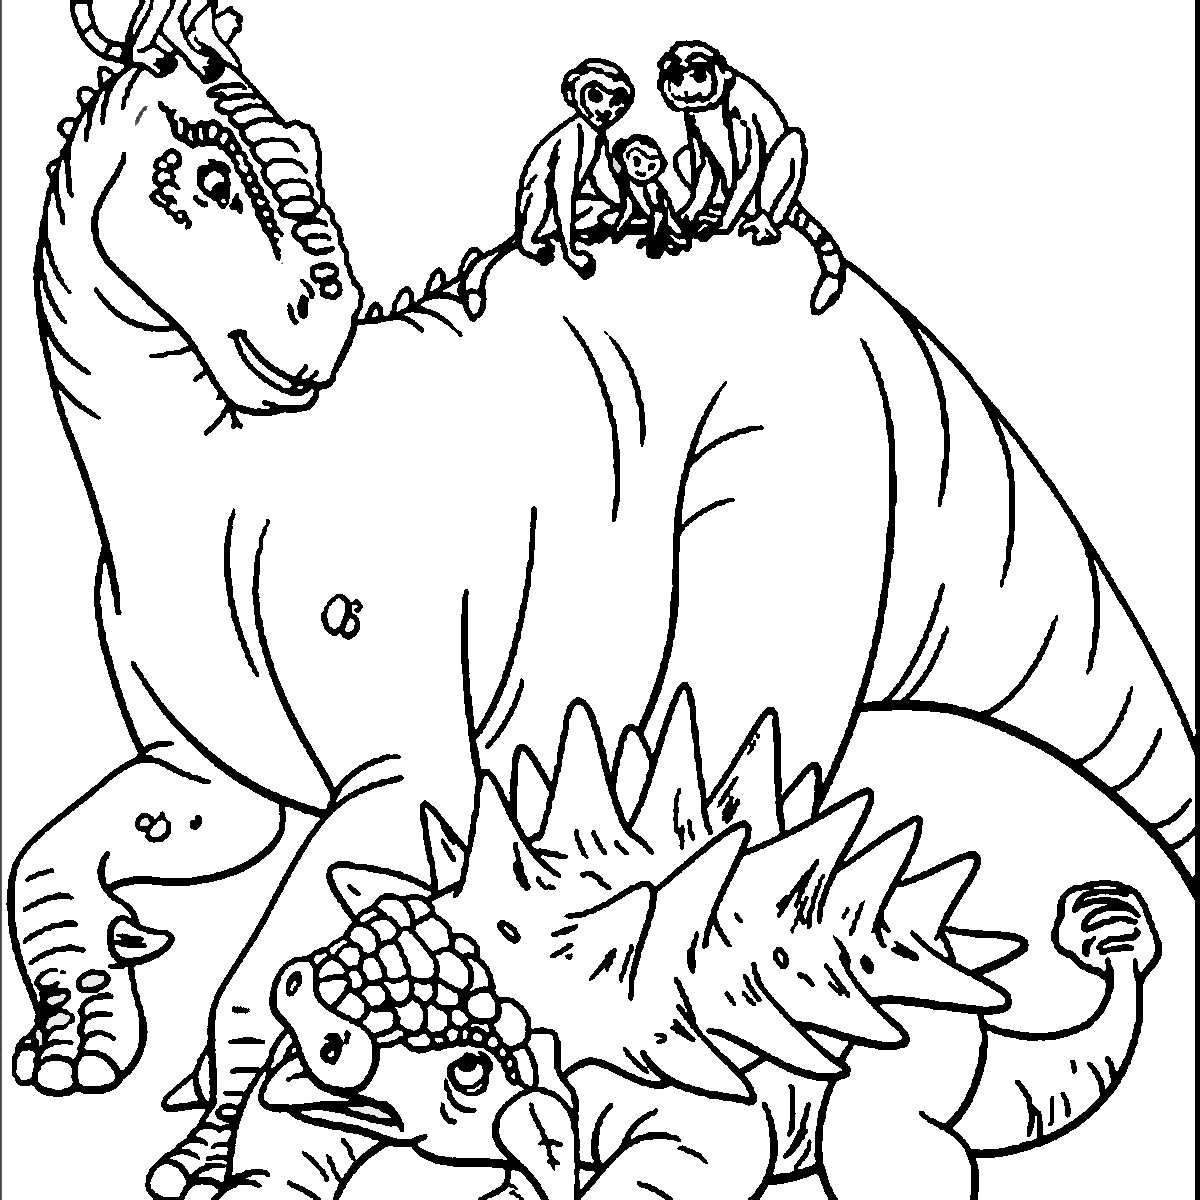 Lego Jurassic World Coloring Pages